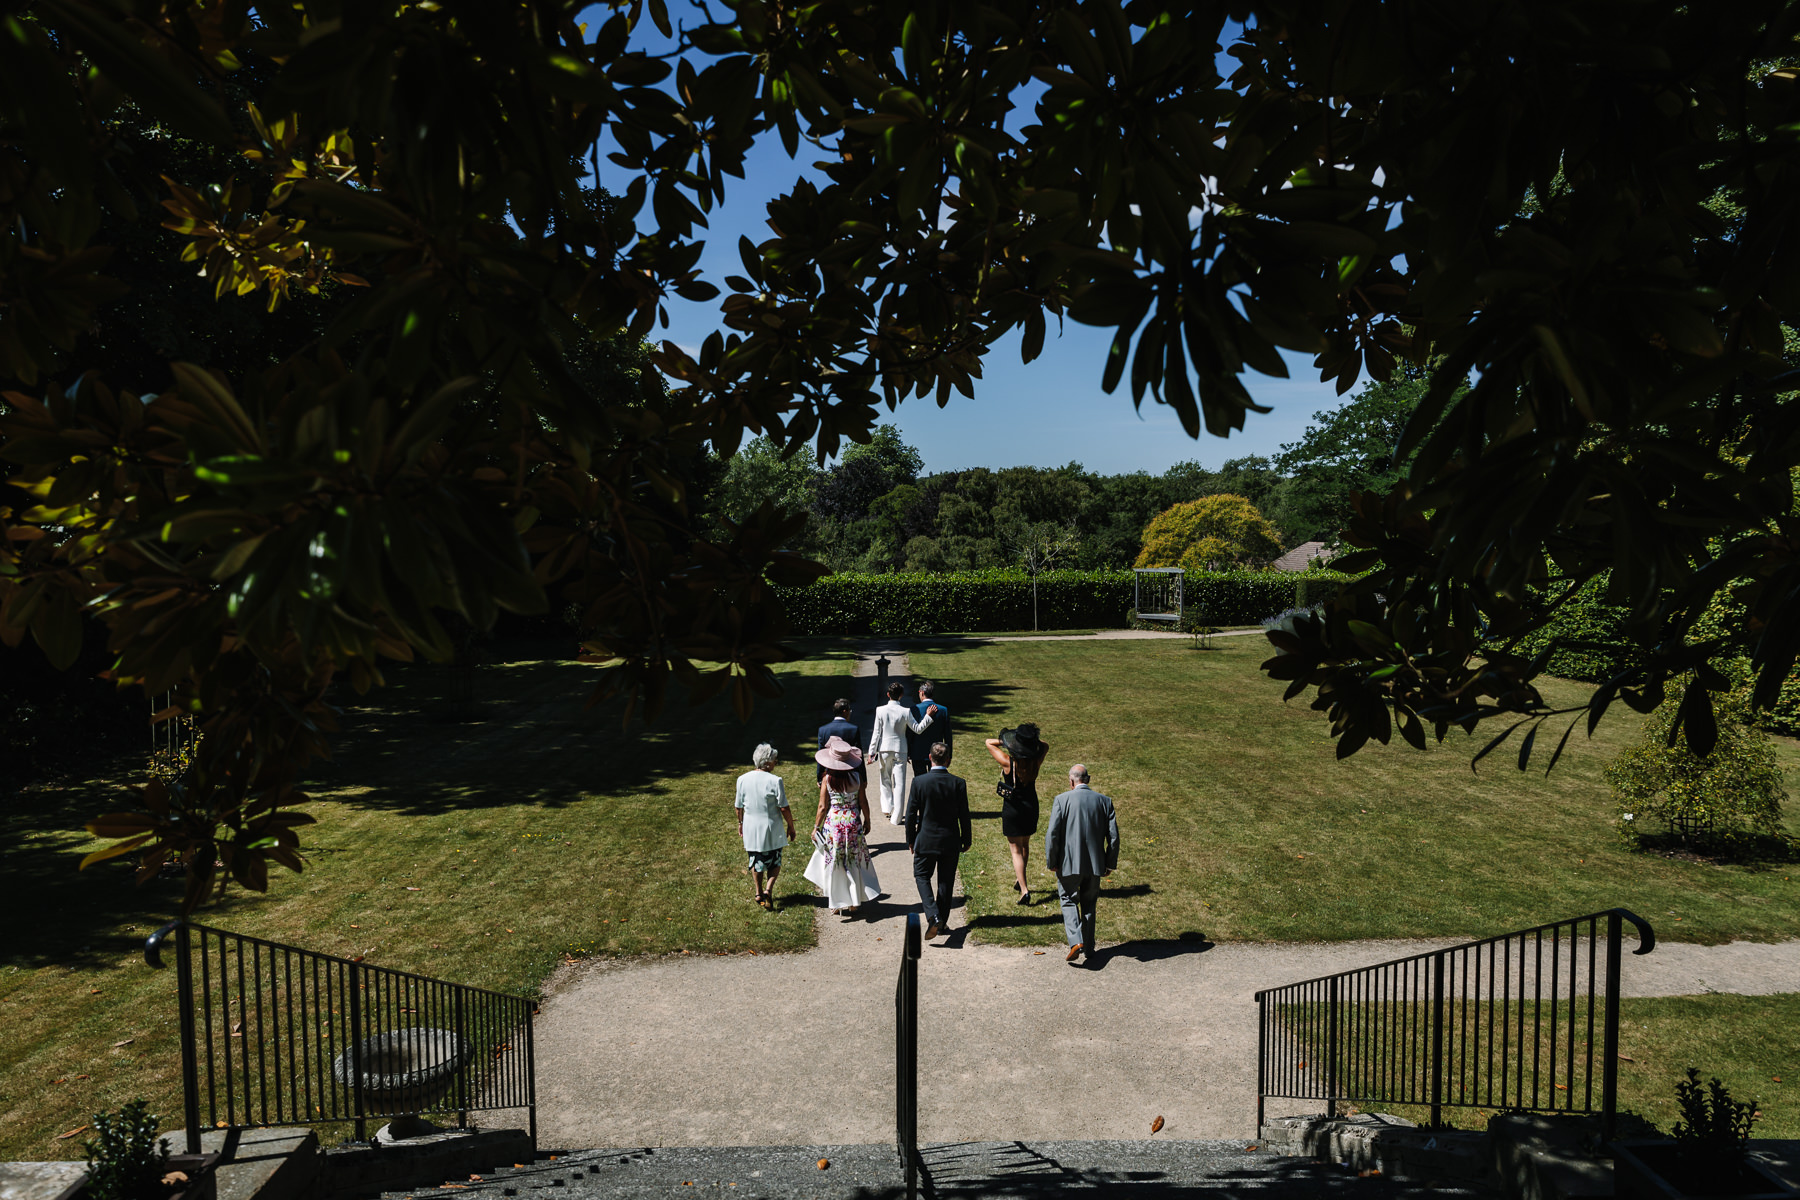 wedding party in leatherhead registry office gardens natural authentic documentary wedding photo bride groom couple beaverbrook surrey hills leatherhead register office wedding photographer